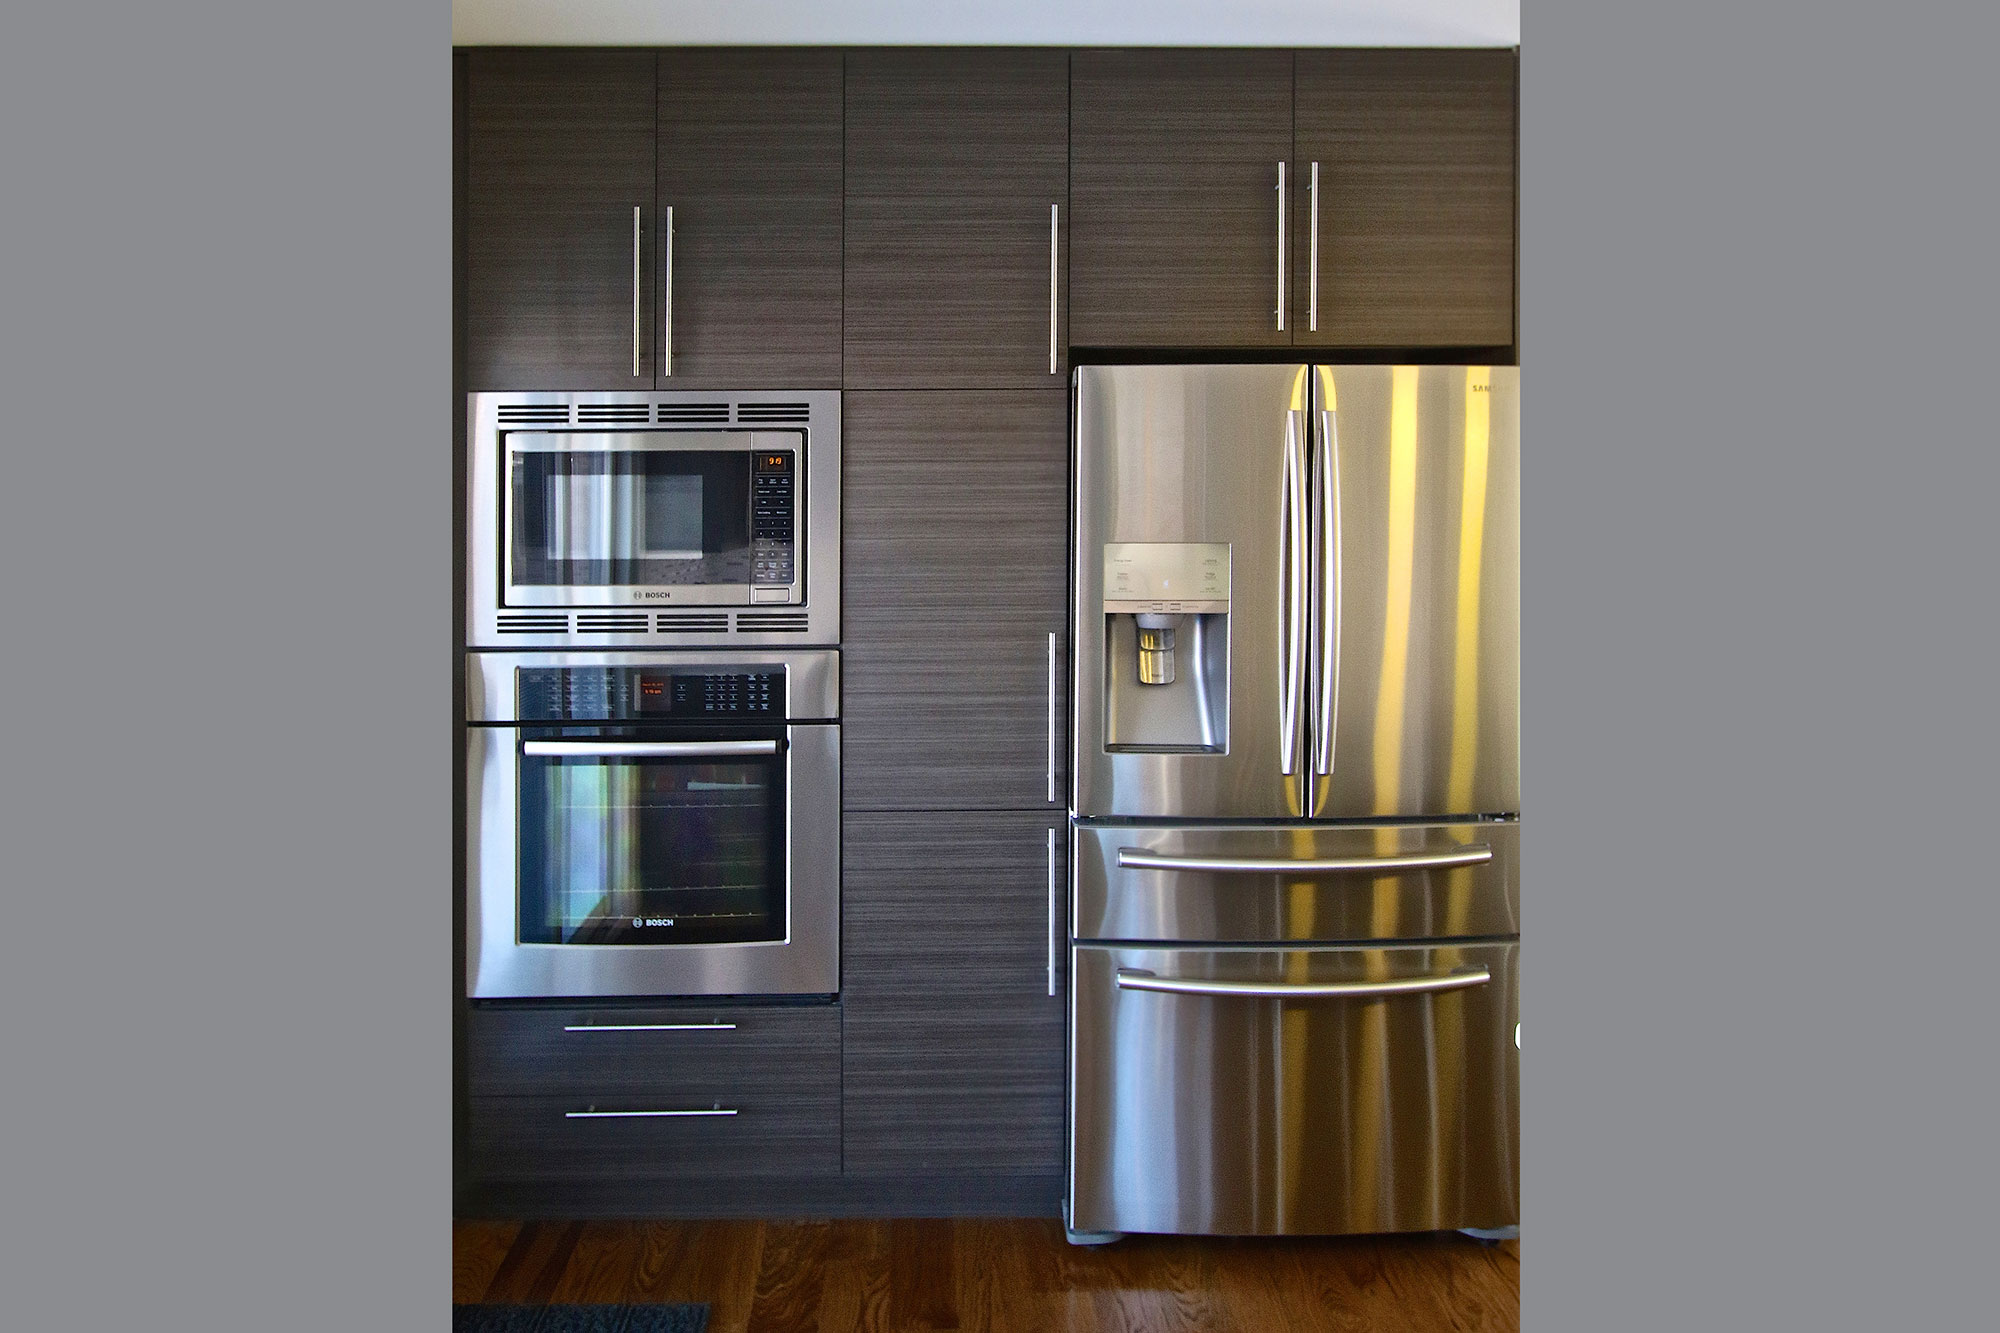 Maple Melamine Kitchen Cabinets Vs Wood Cabinets Kitchen And Bath Kitchen Cabinets And Bathroom